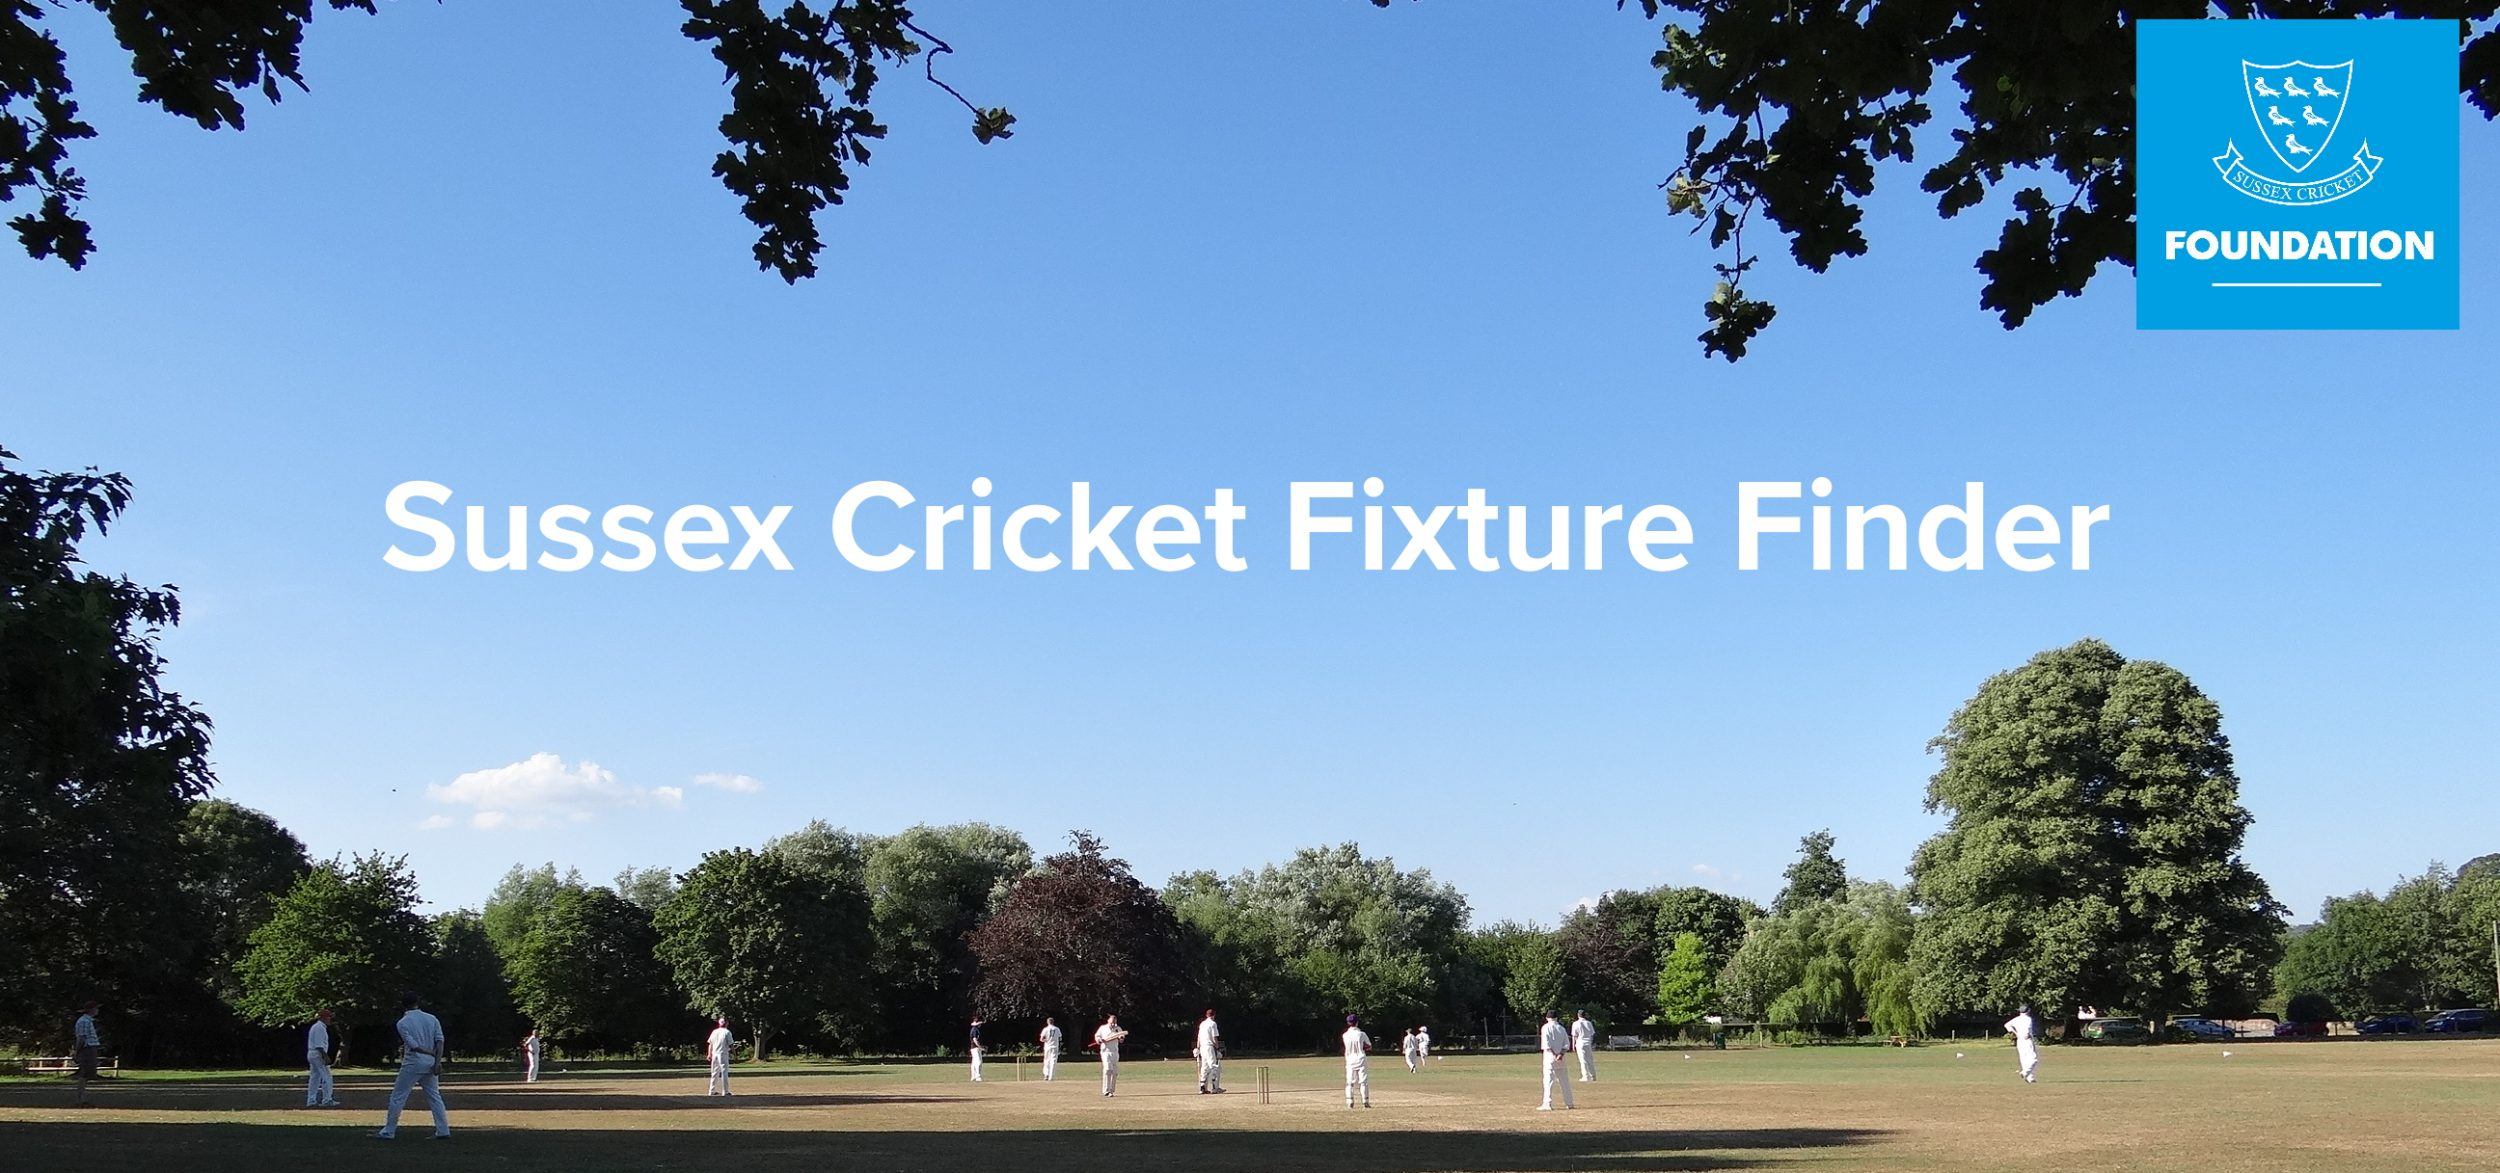 Sussex Cricket Fixture Finder